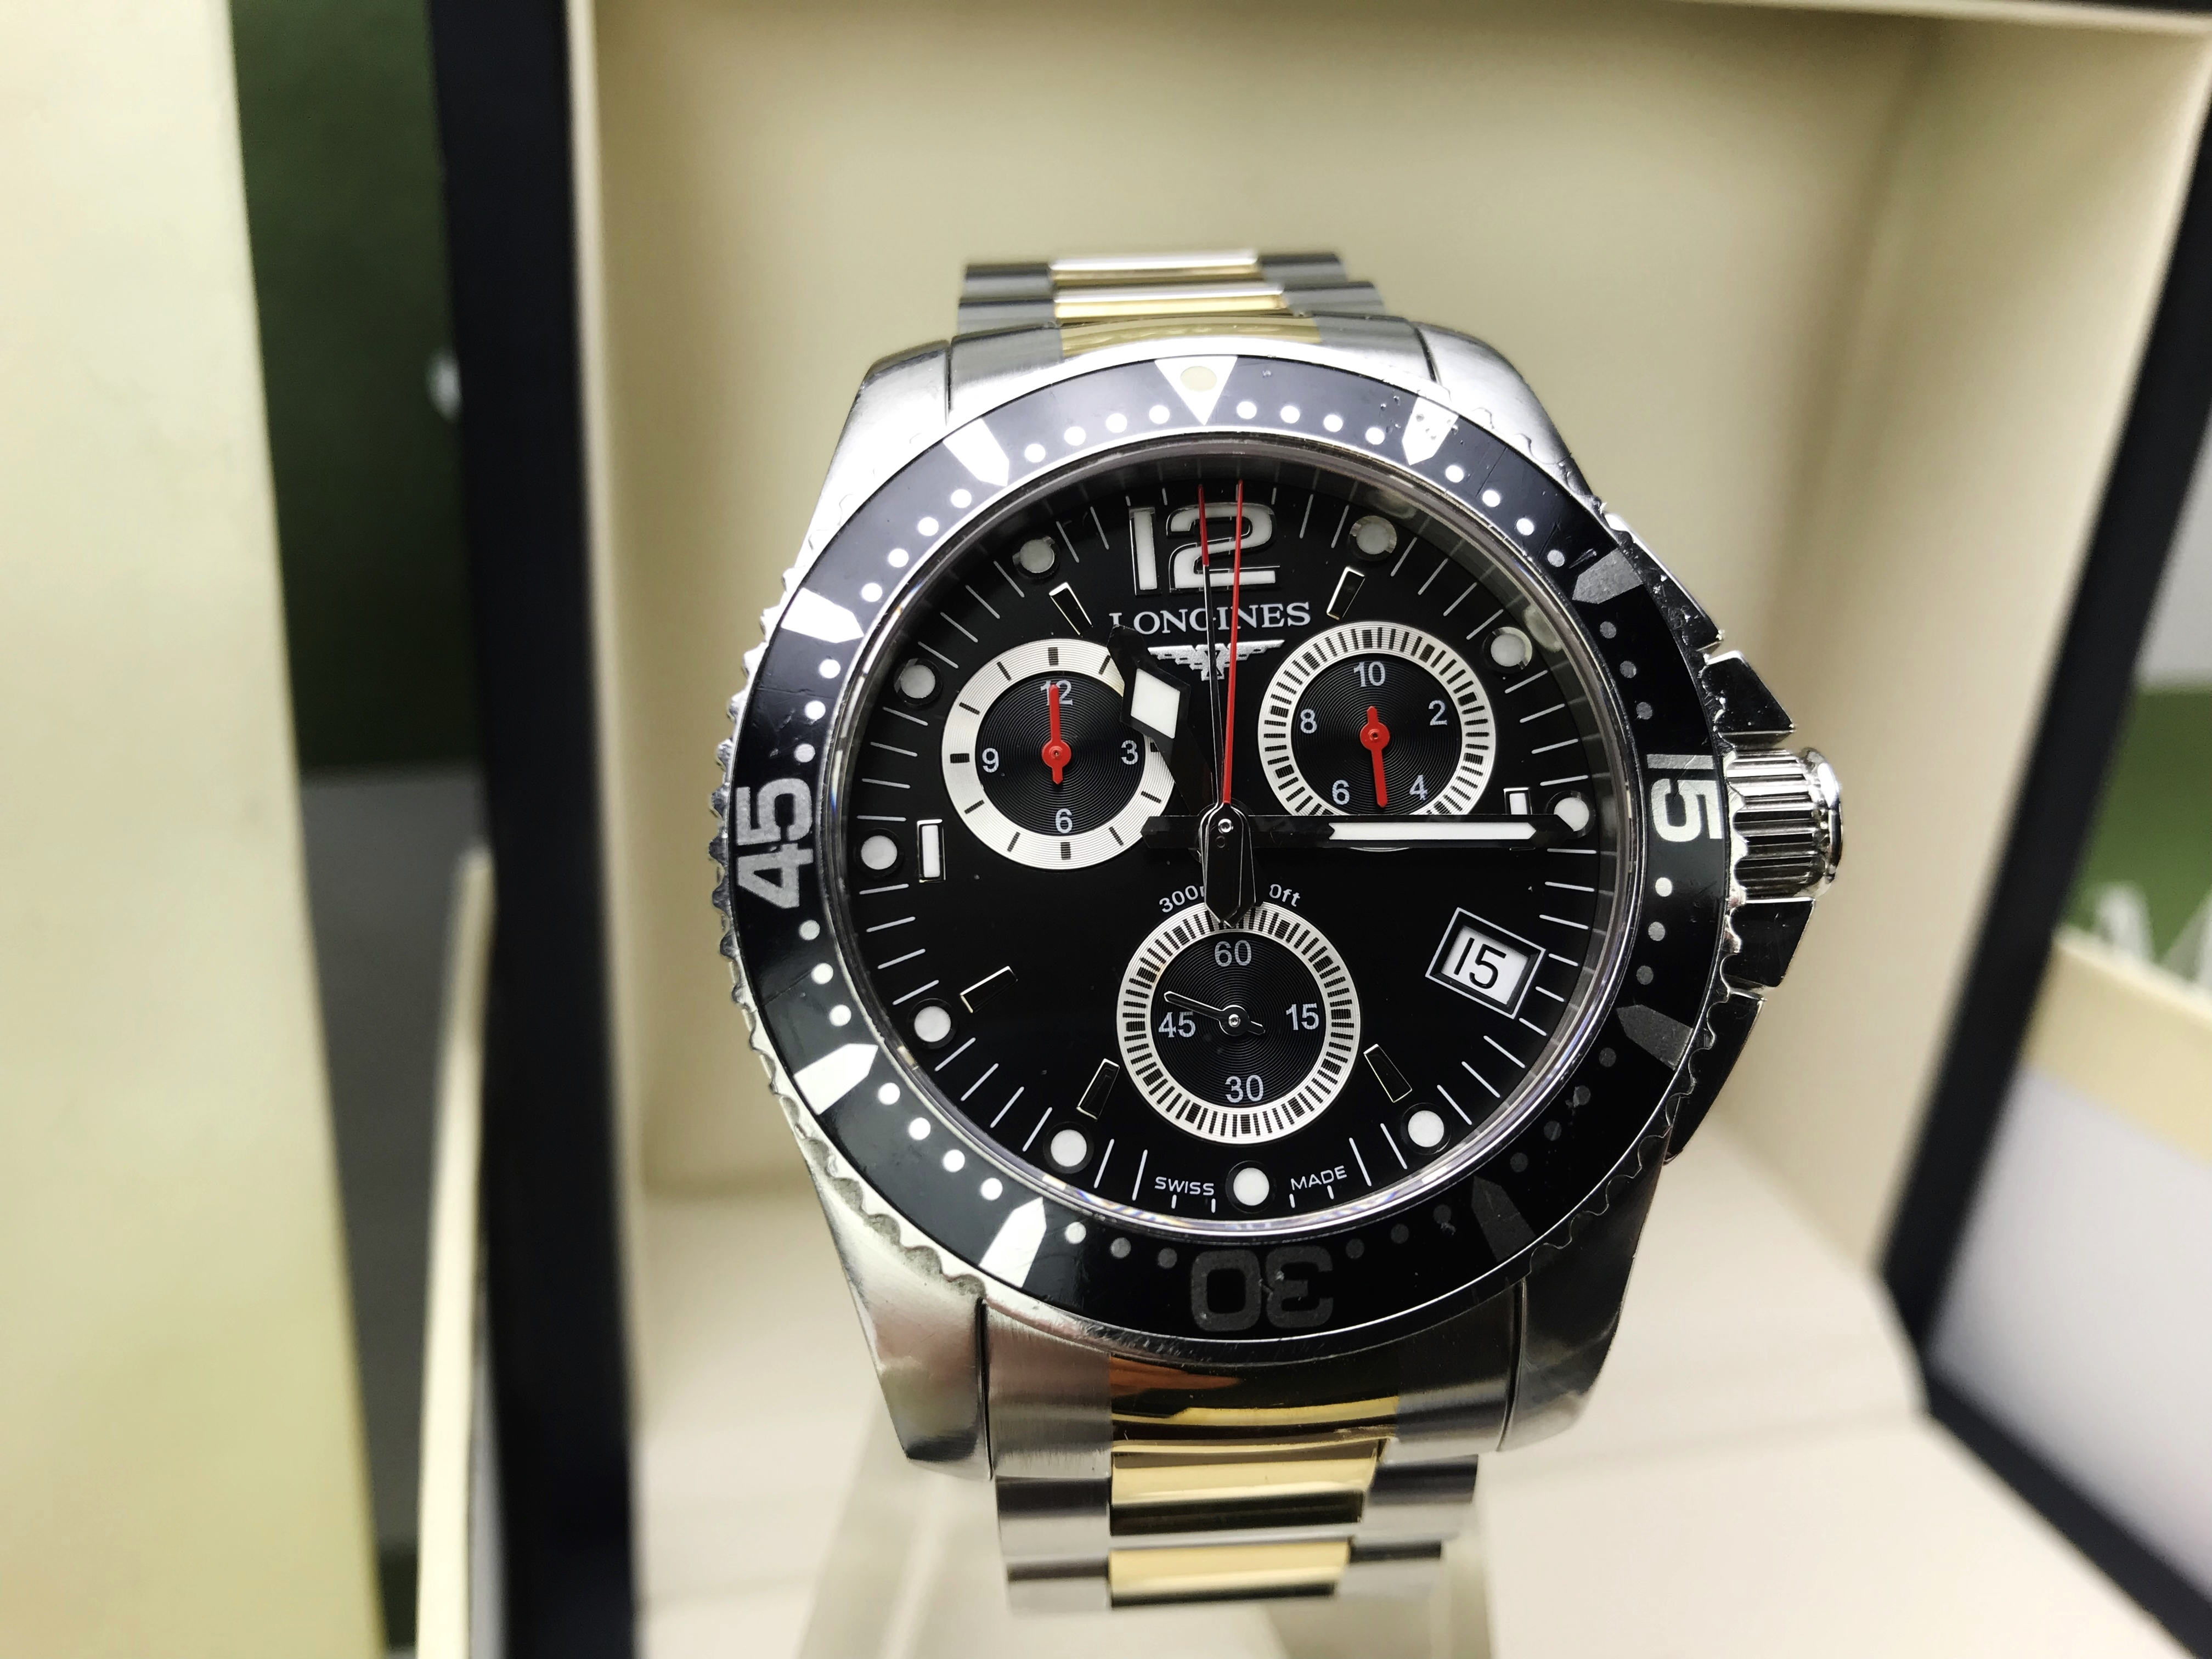 Lot 40 - Longines Hydro Conquest 41mm Chronograph